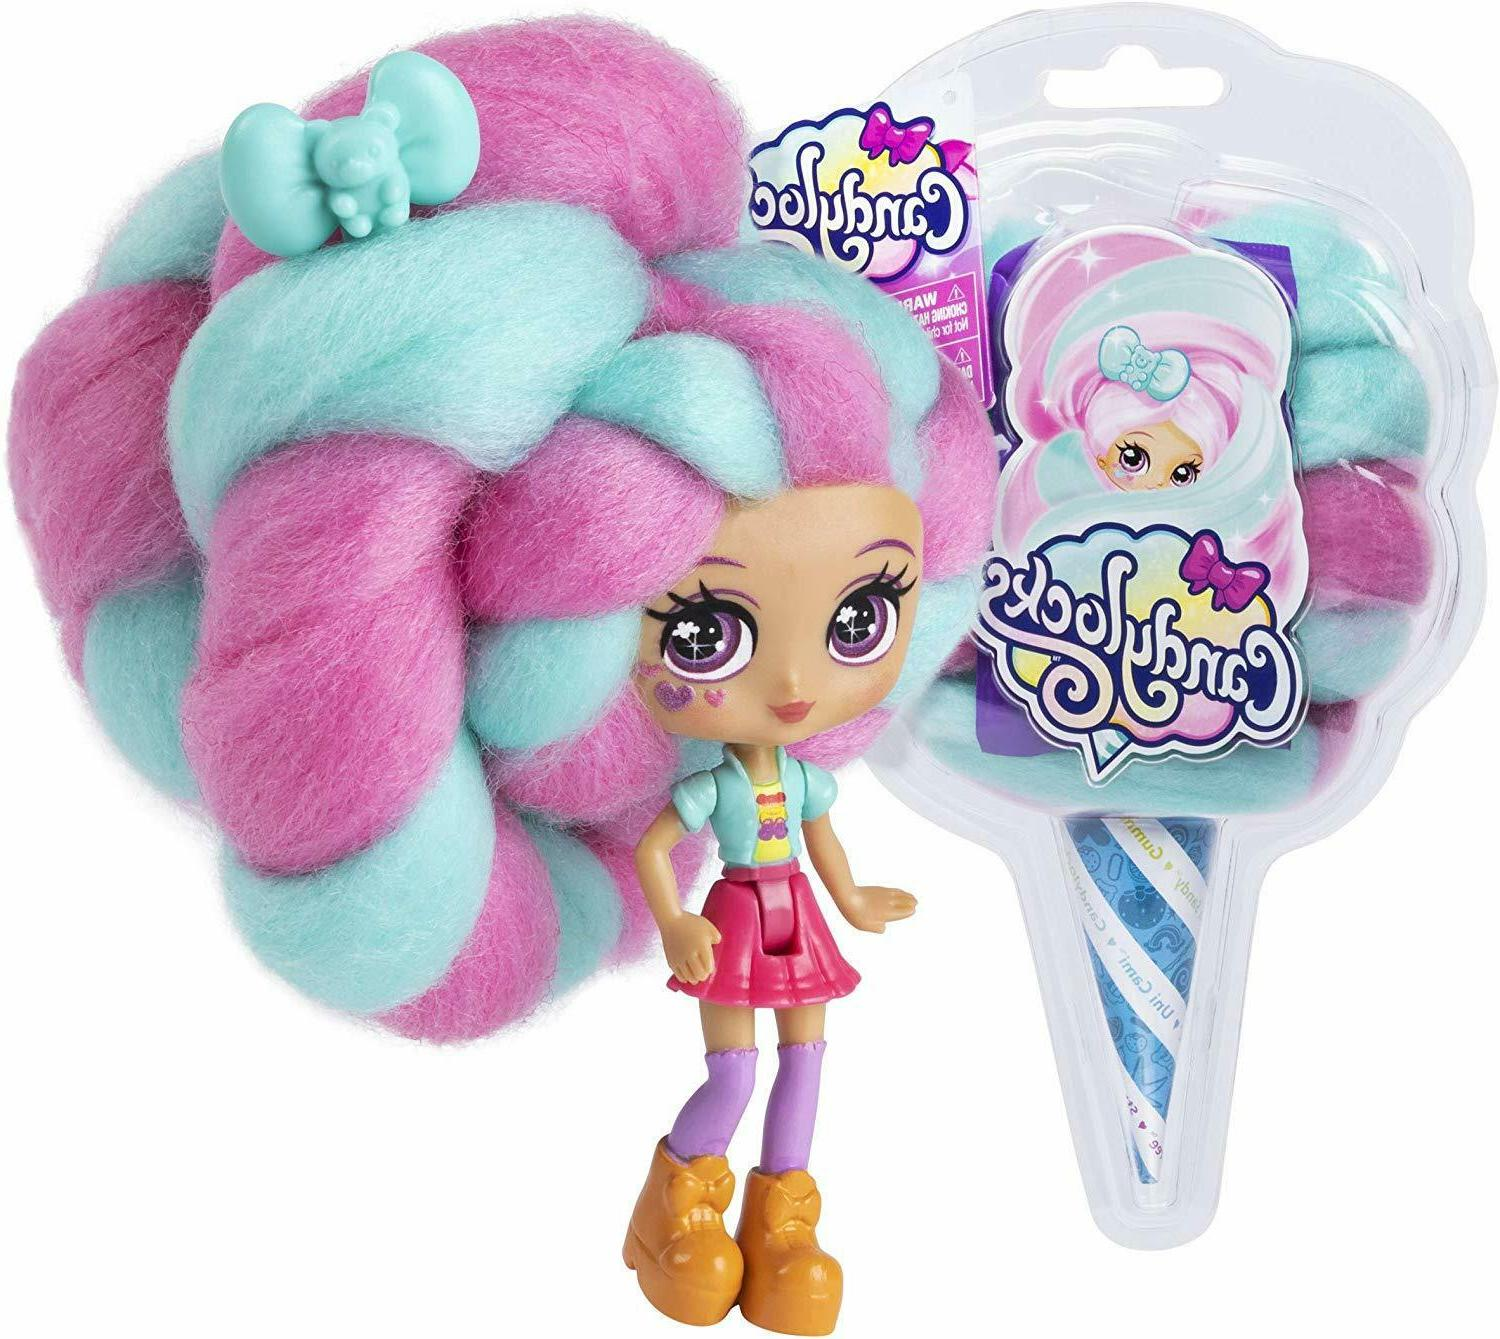 3 inch scented collectible surprise doll w